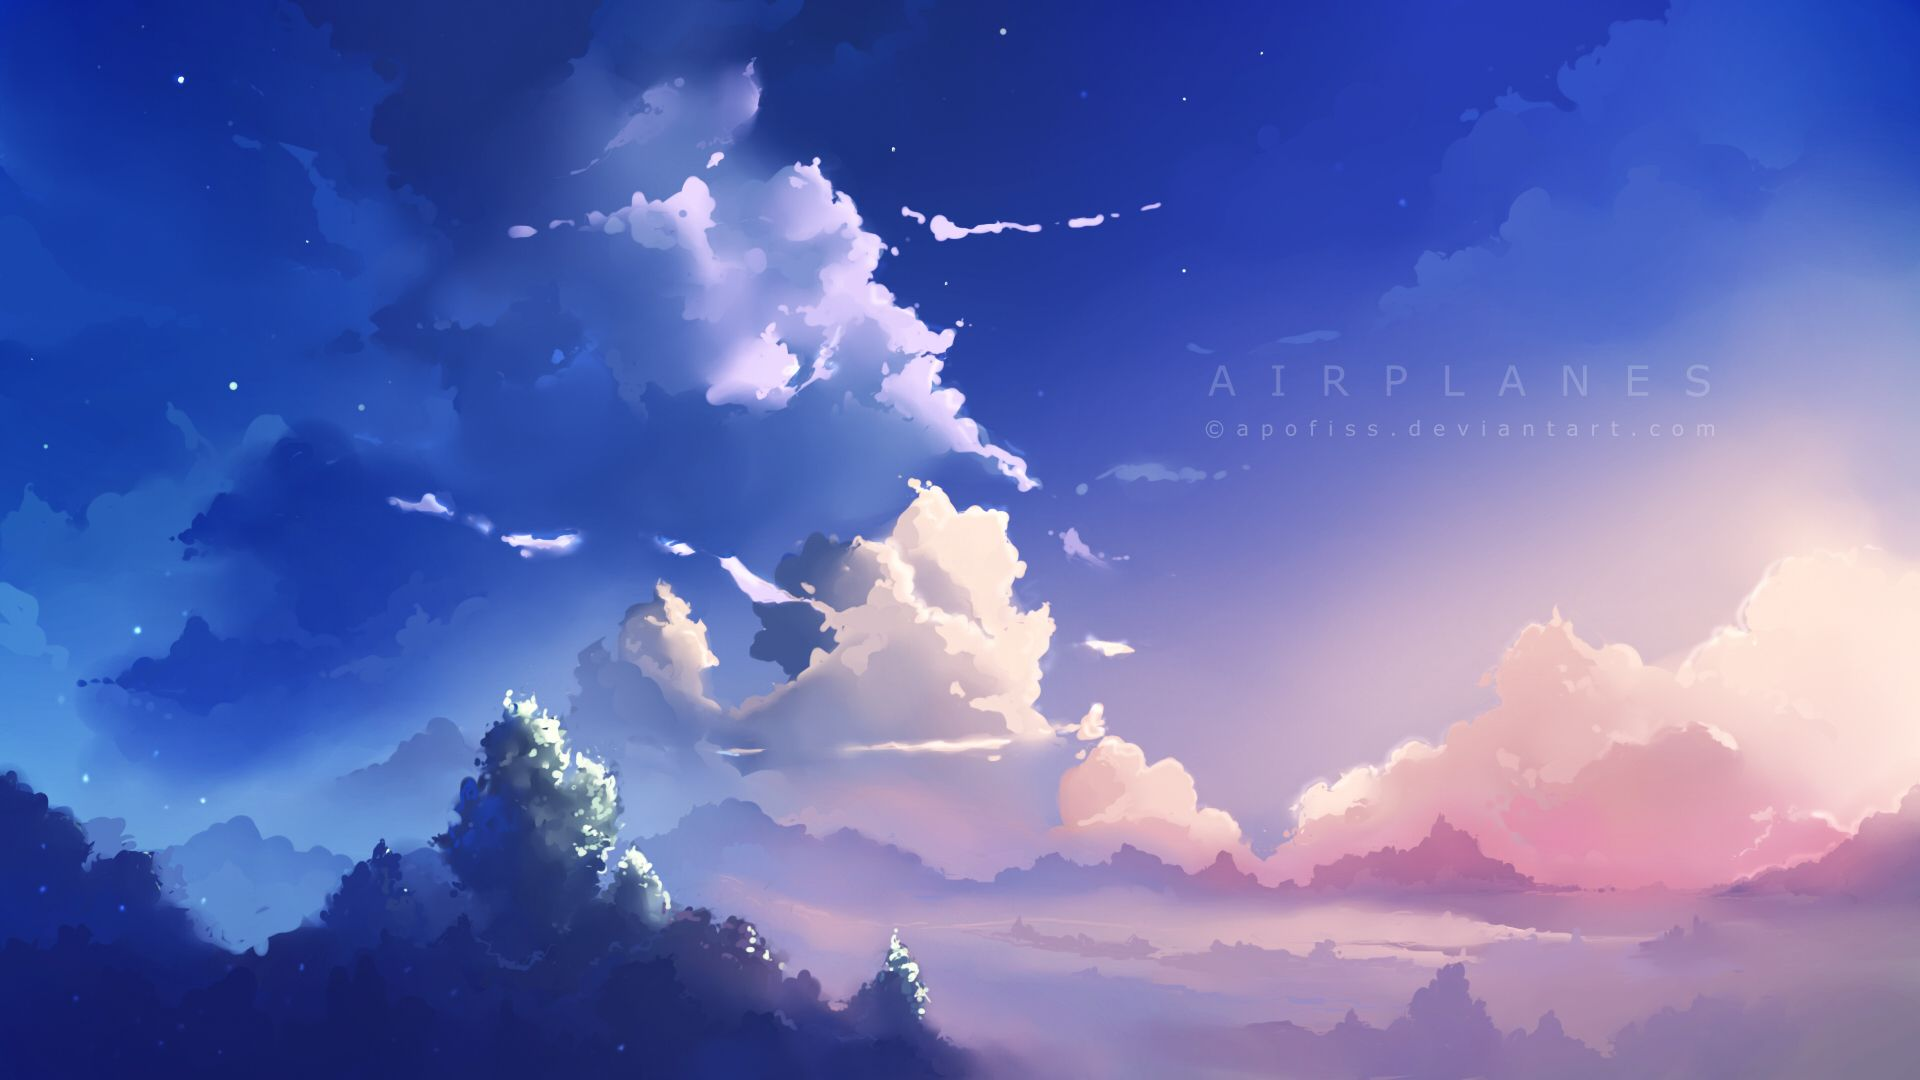 Landscape Clouds Drawing Google Zoeken Scenery Wallpaper Anime Backgrounds Wallpapers Anime Scenery